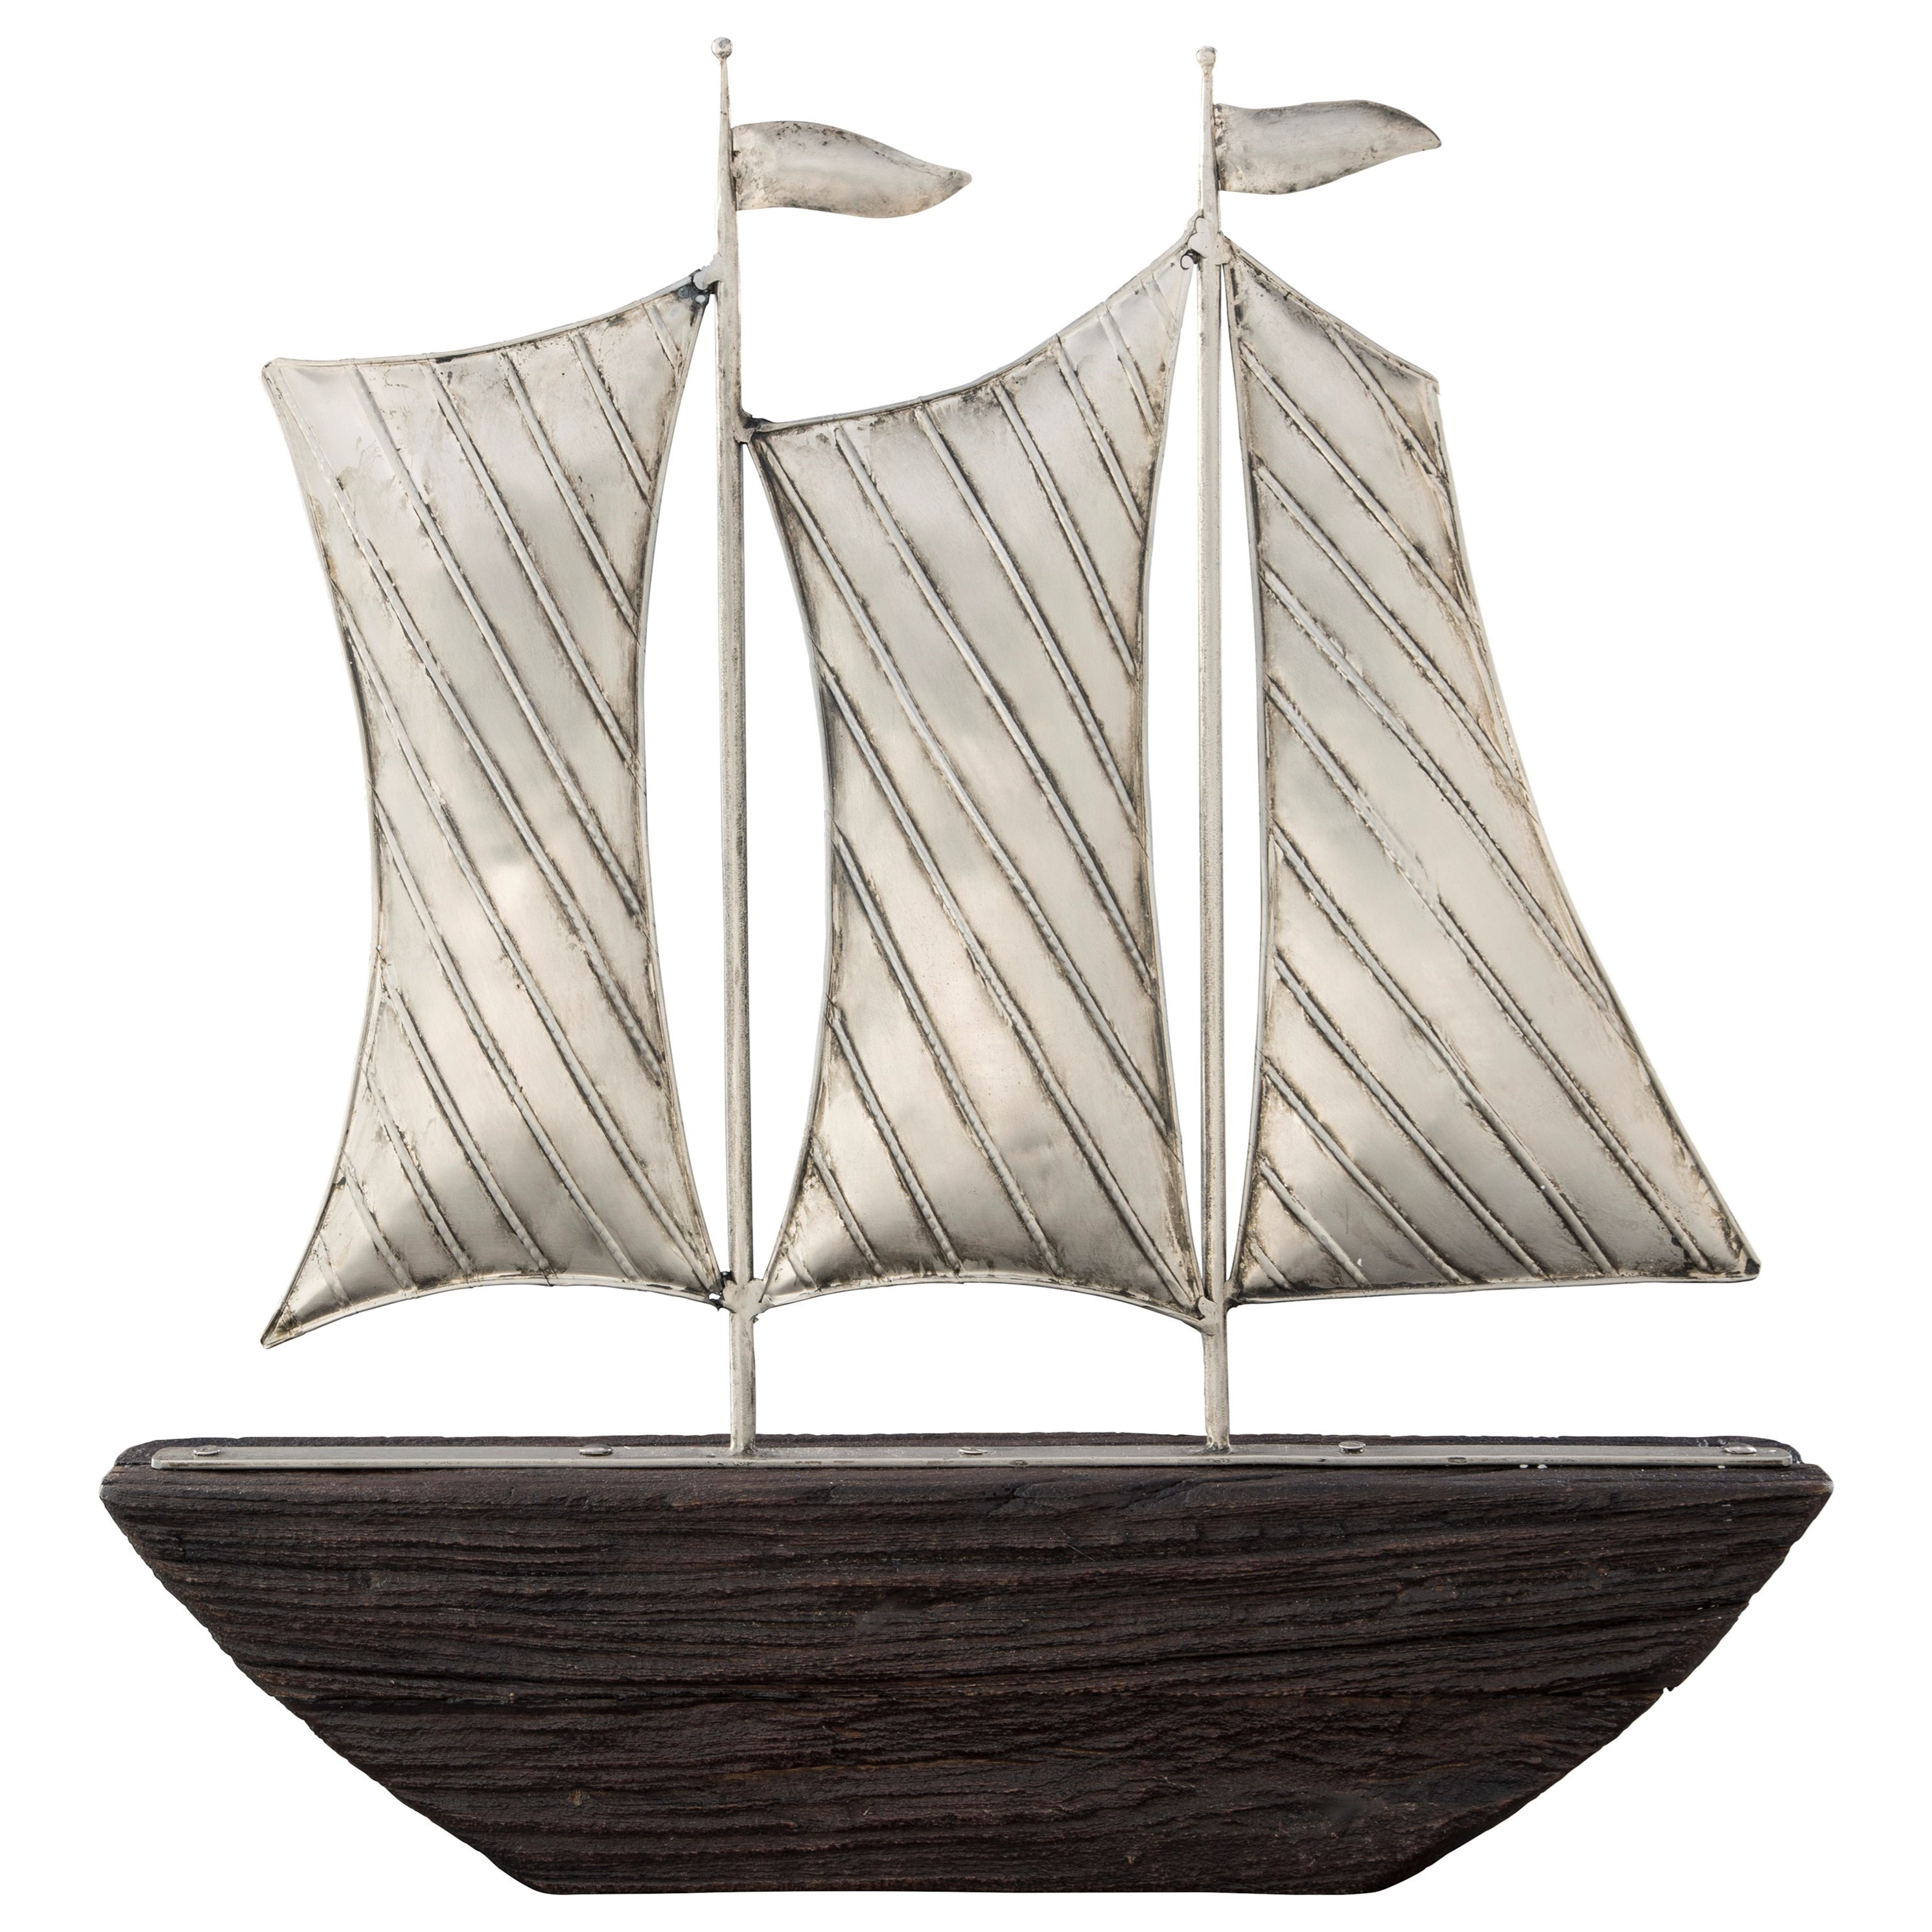 Accents Myla Brown/Silver Finish Ship Sculpture at Van Hill Furniture